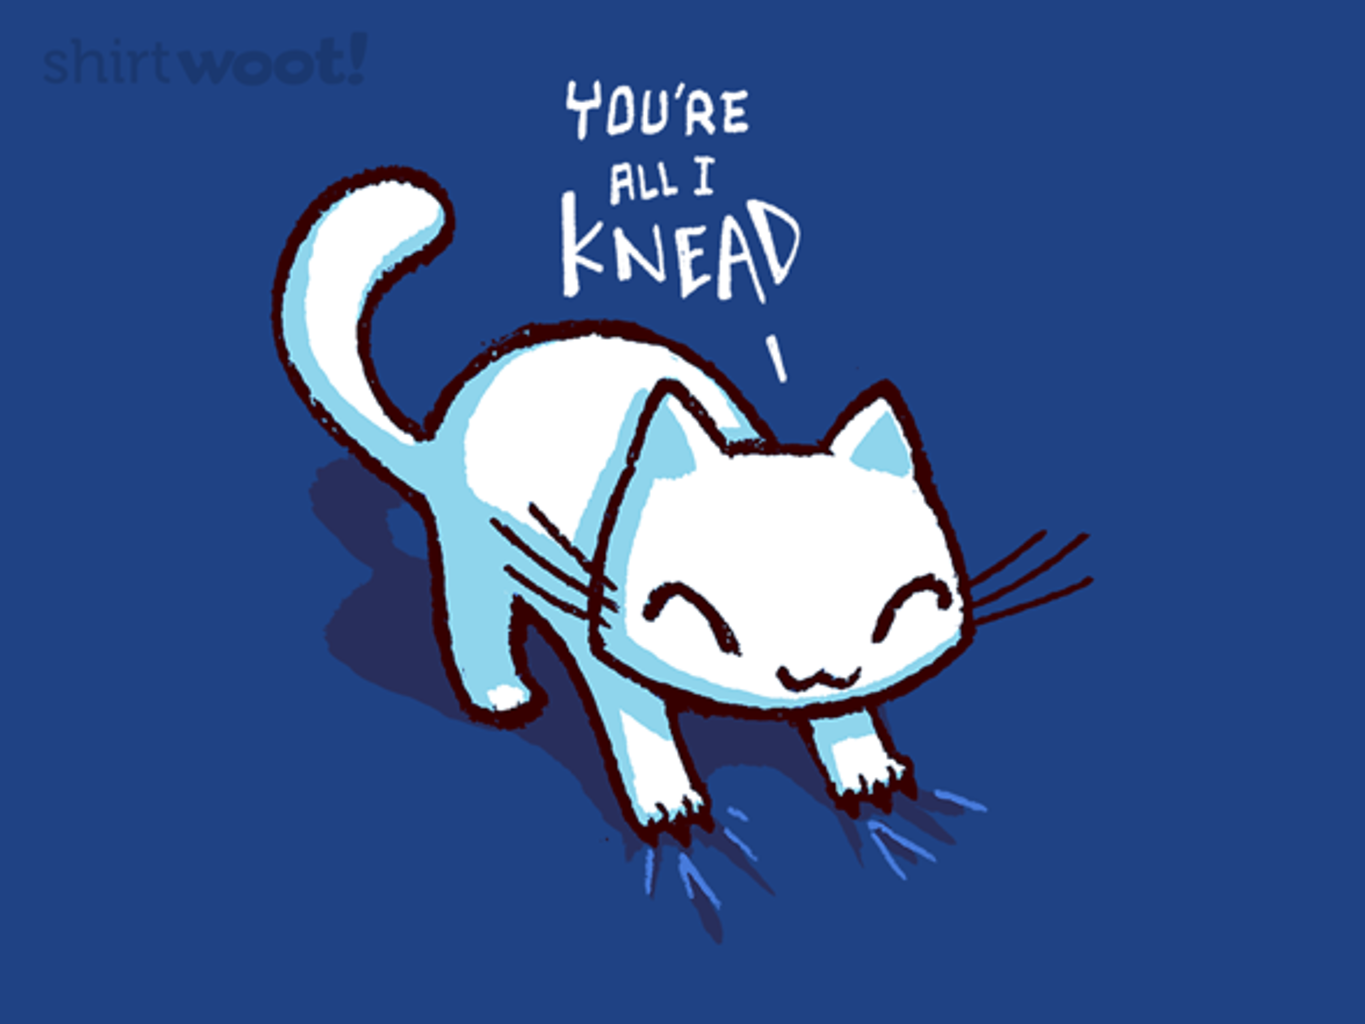 Woot!: You're All I Knead - $15.00 + Free shipping